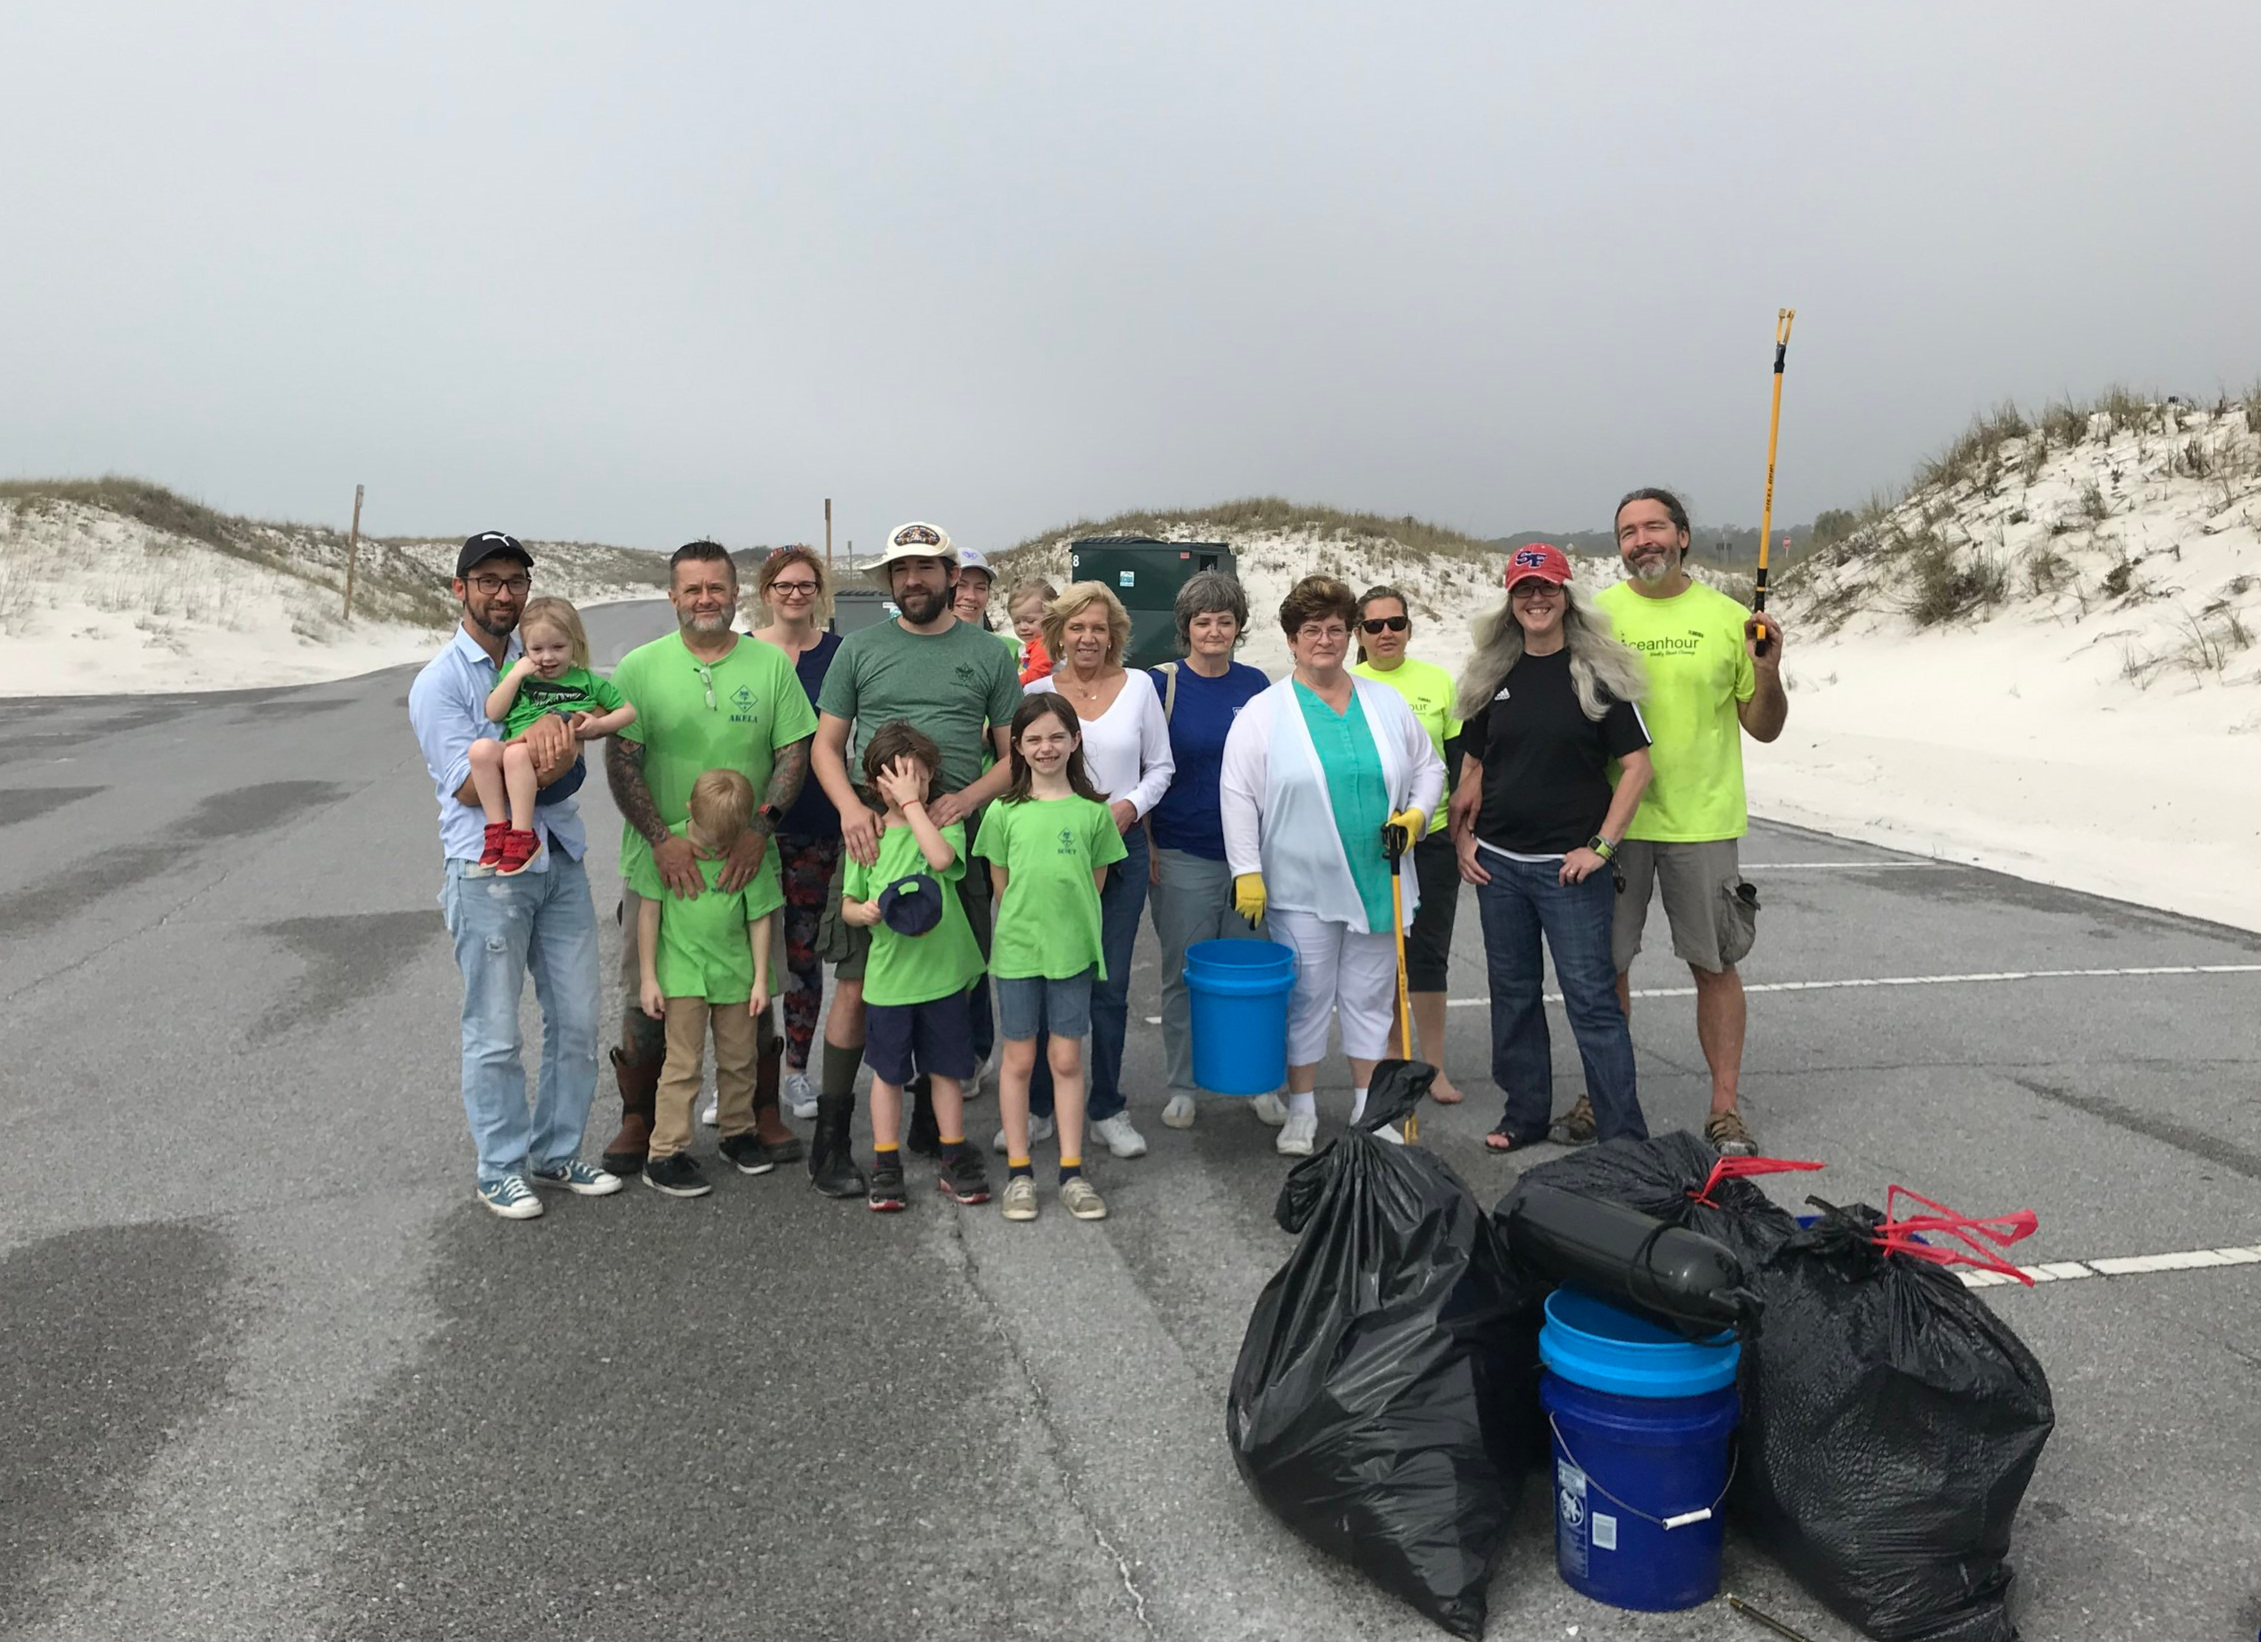 - 52 volunteers at Ft. Pickens Fishing Pier, Langdon Beach and Lot 19A picked up 325 lbs of trash. Month's total of 1,937 lbs! Well ahead of last year - thanks volunteers! Odd stuff - a wall thermostat, Cub Pack 410 made it out